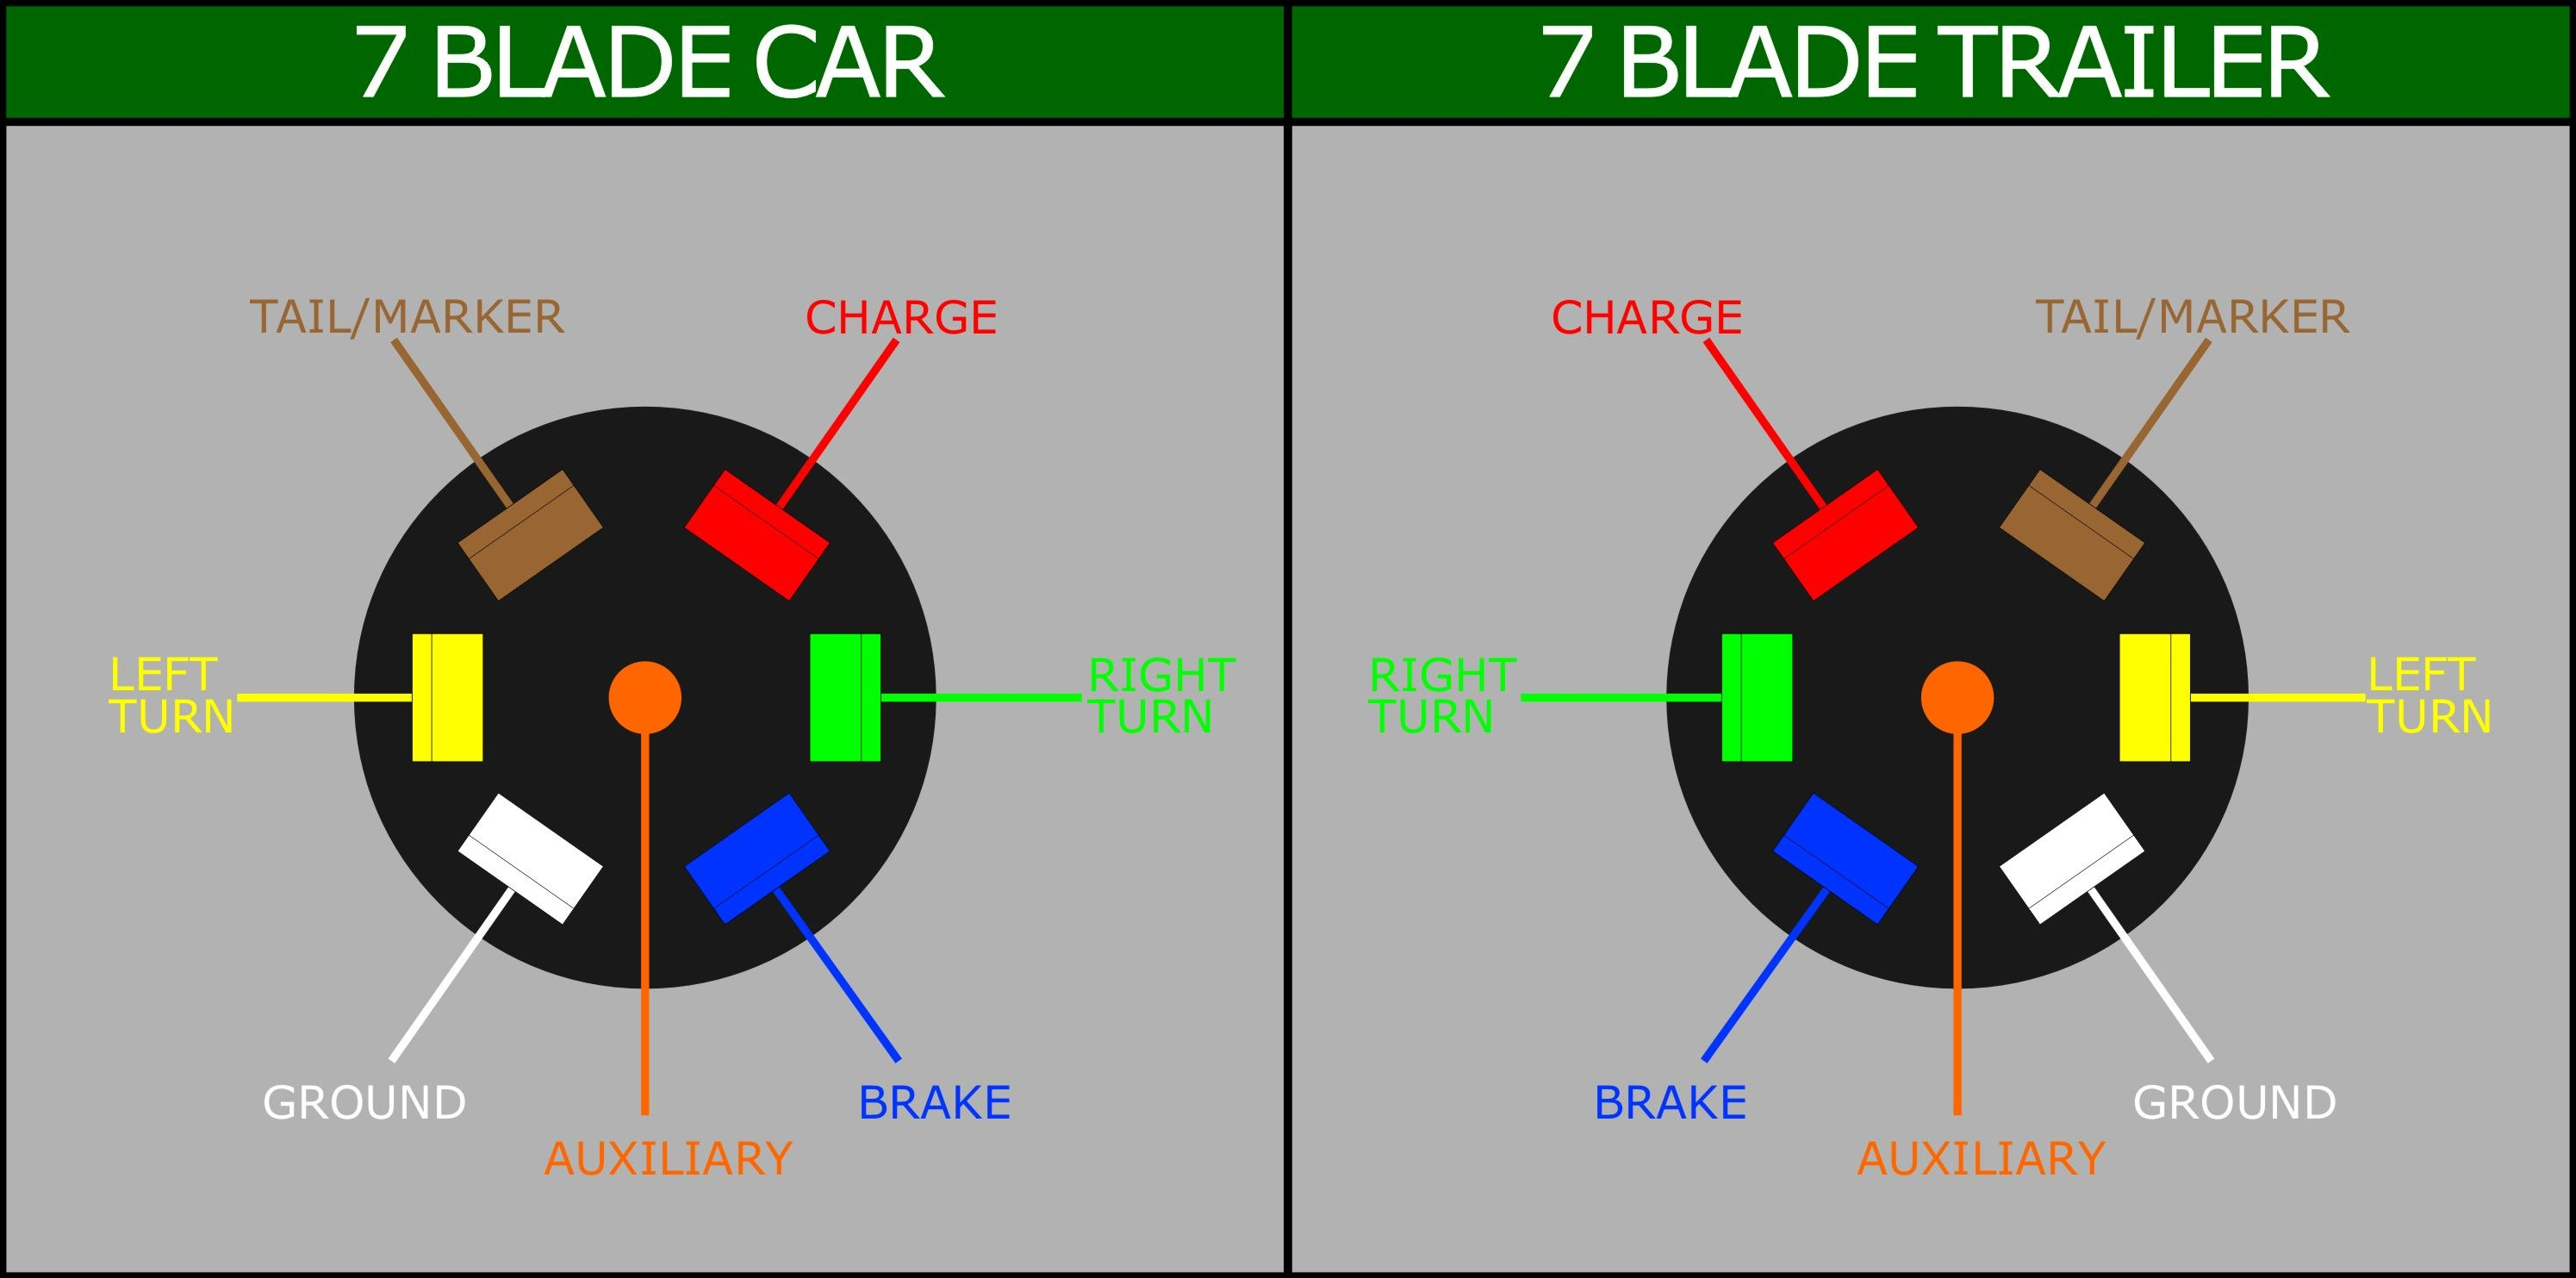 Pinchristopher Orth On Good To Know | Trailer Wiring Diagram - Trailer Wiring 7 Blade Diagram